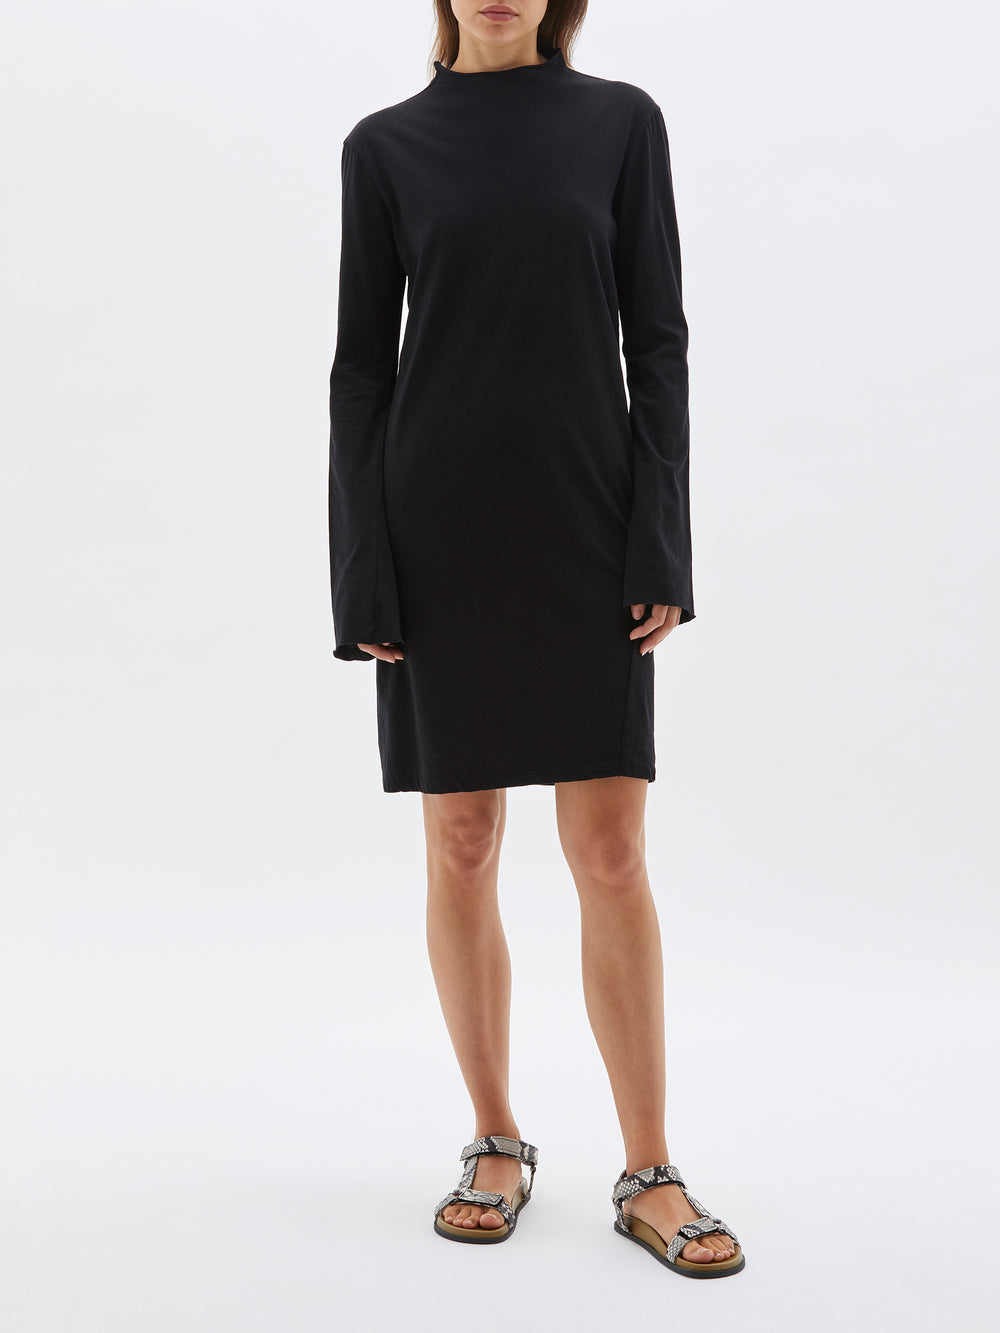 raised neck slim long sleeve dress